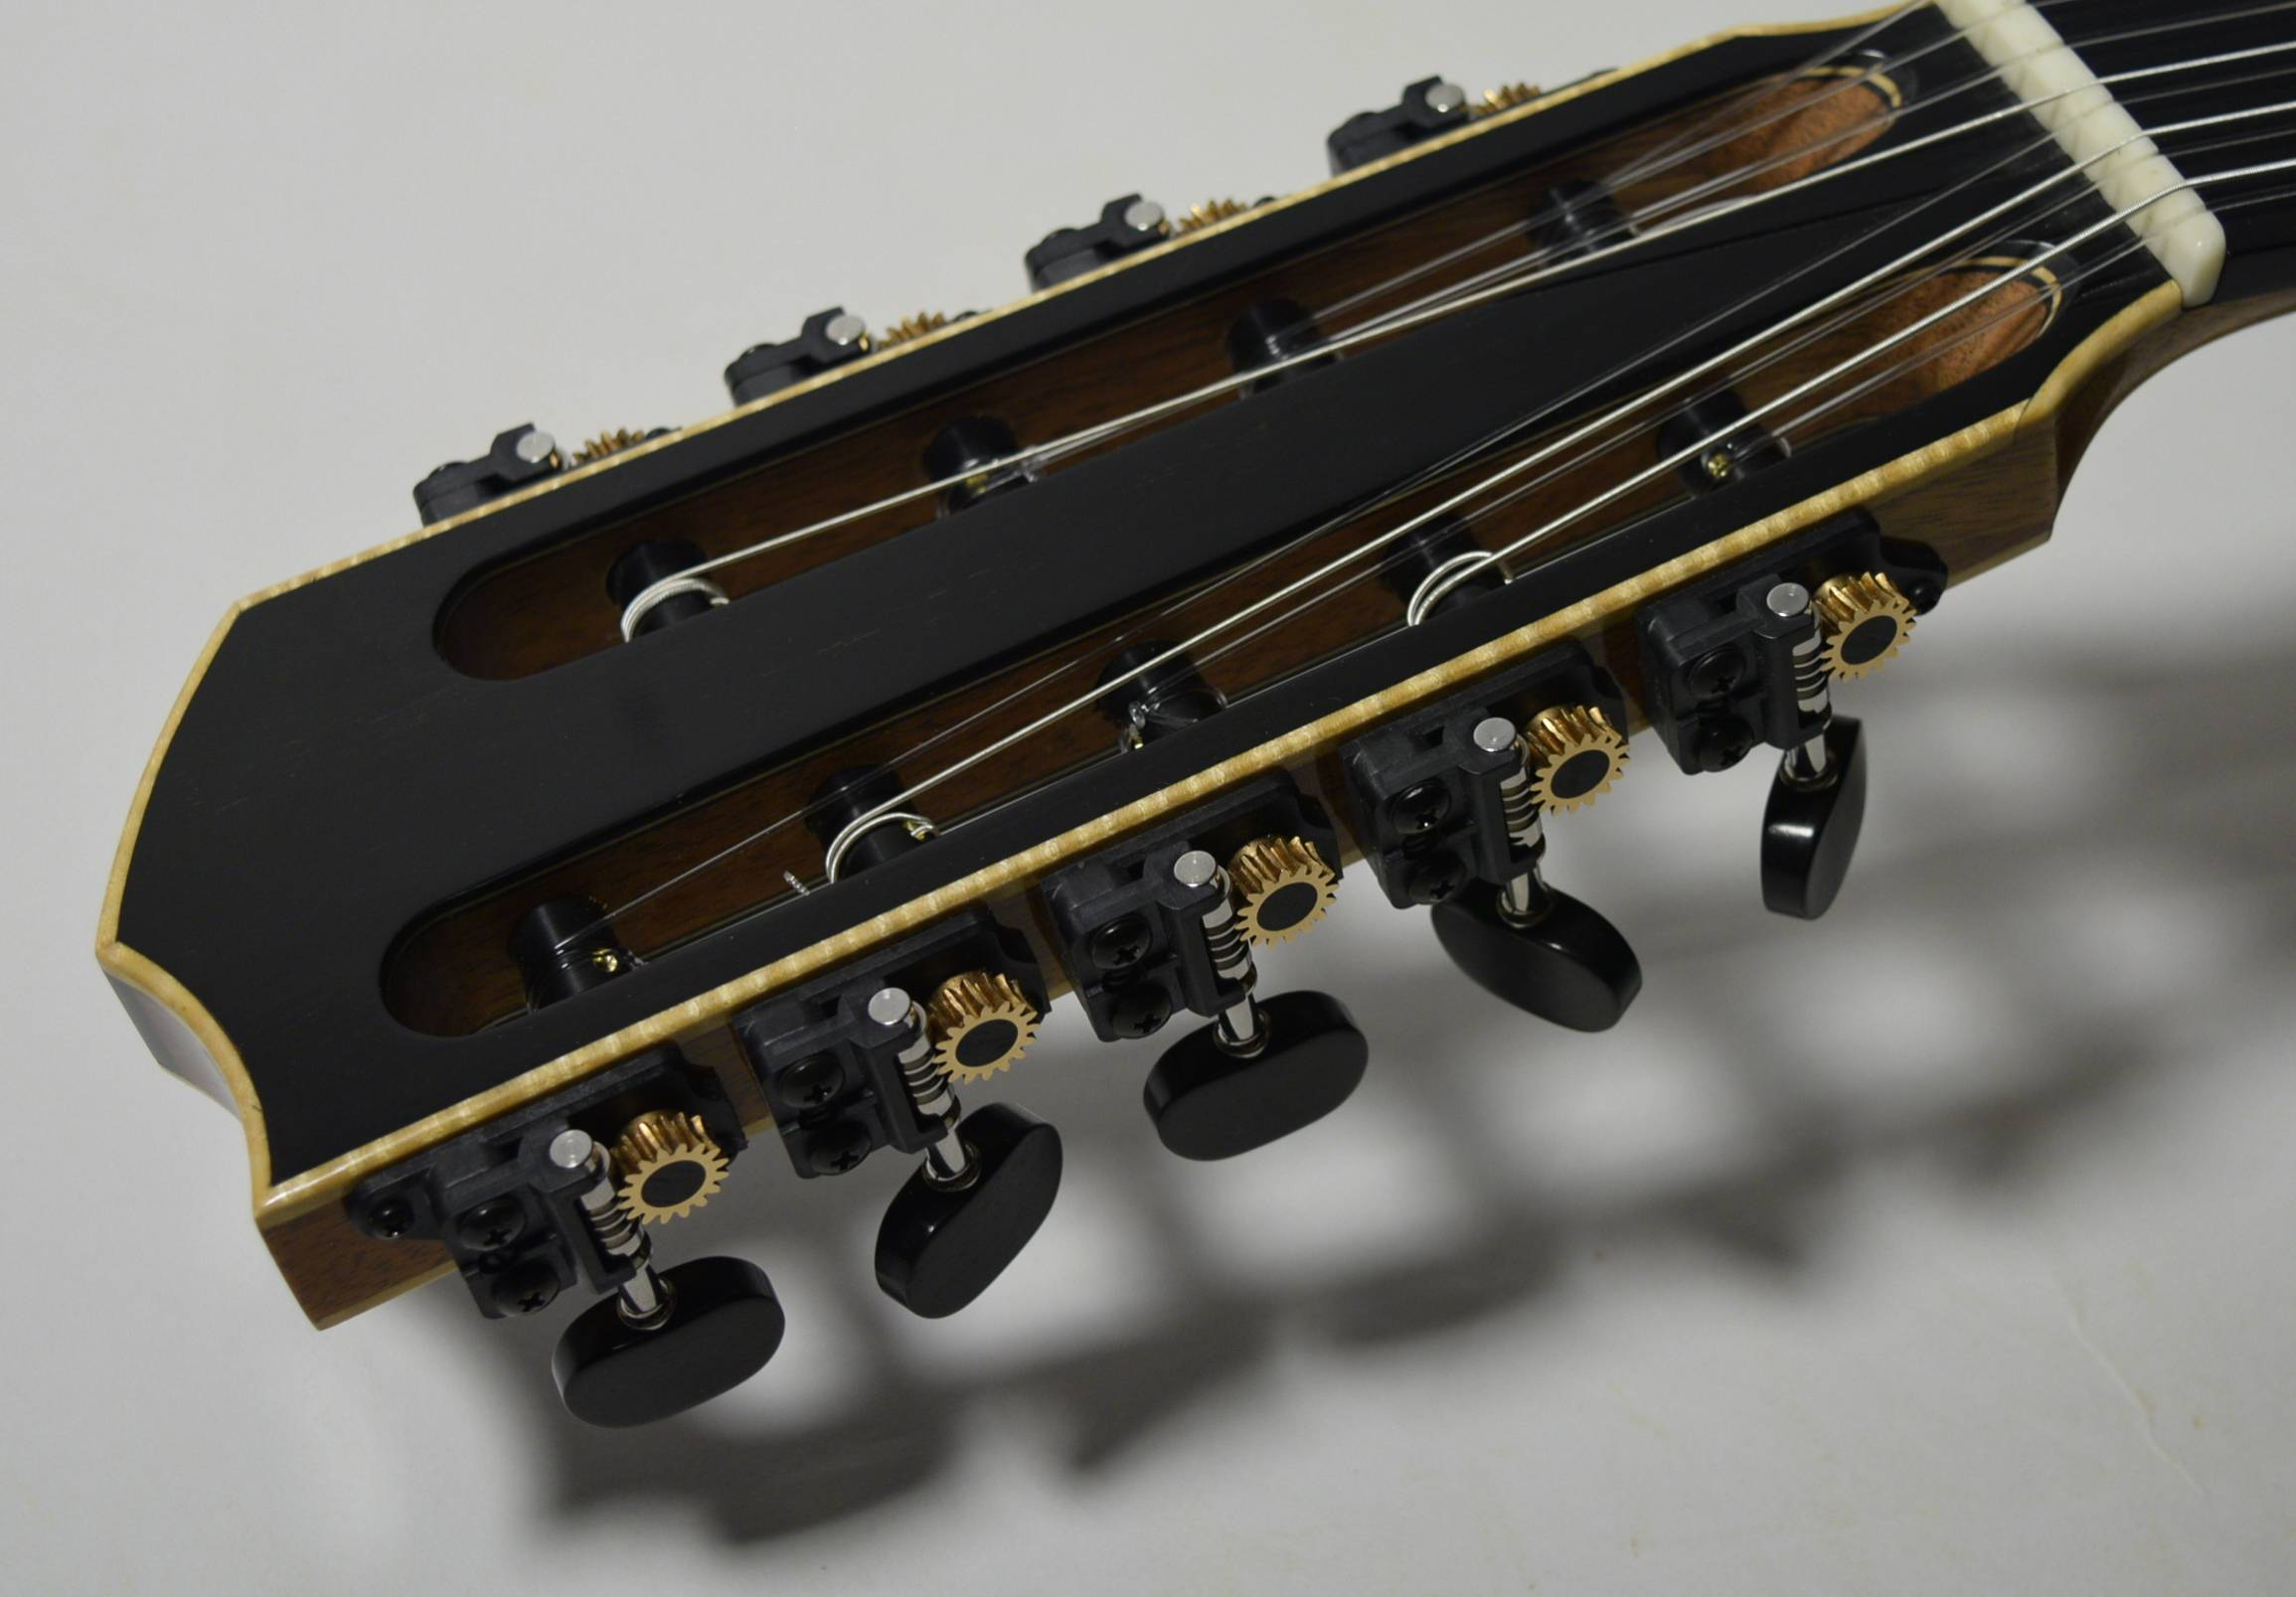 A nine string modern guitar for the barque repertoire